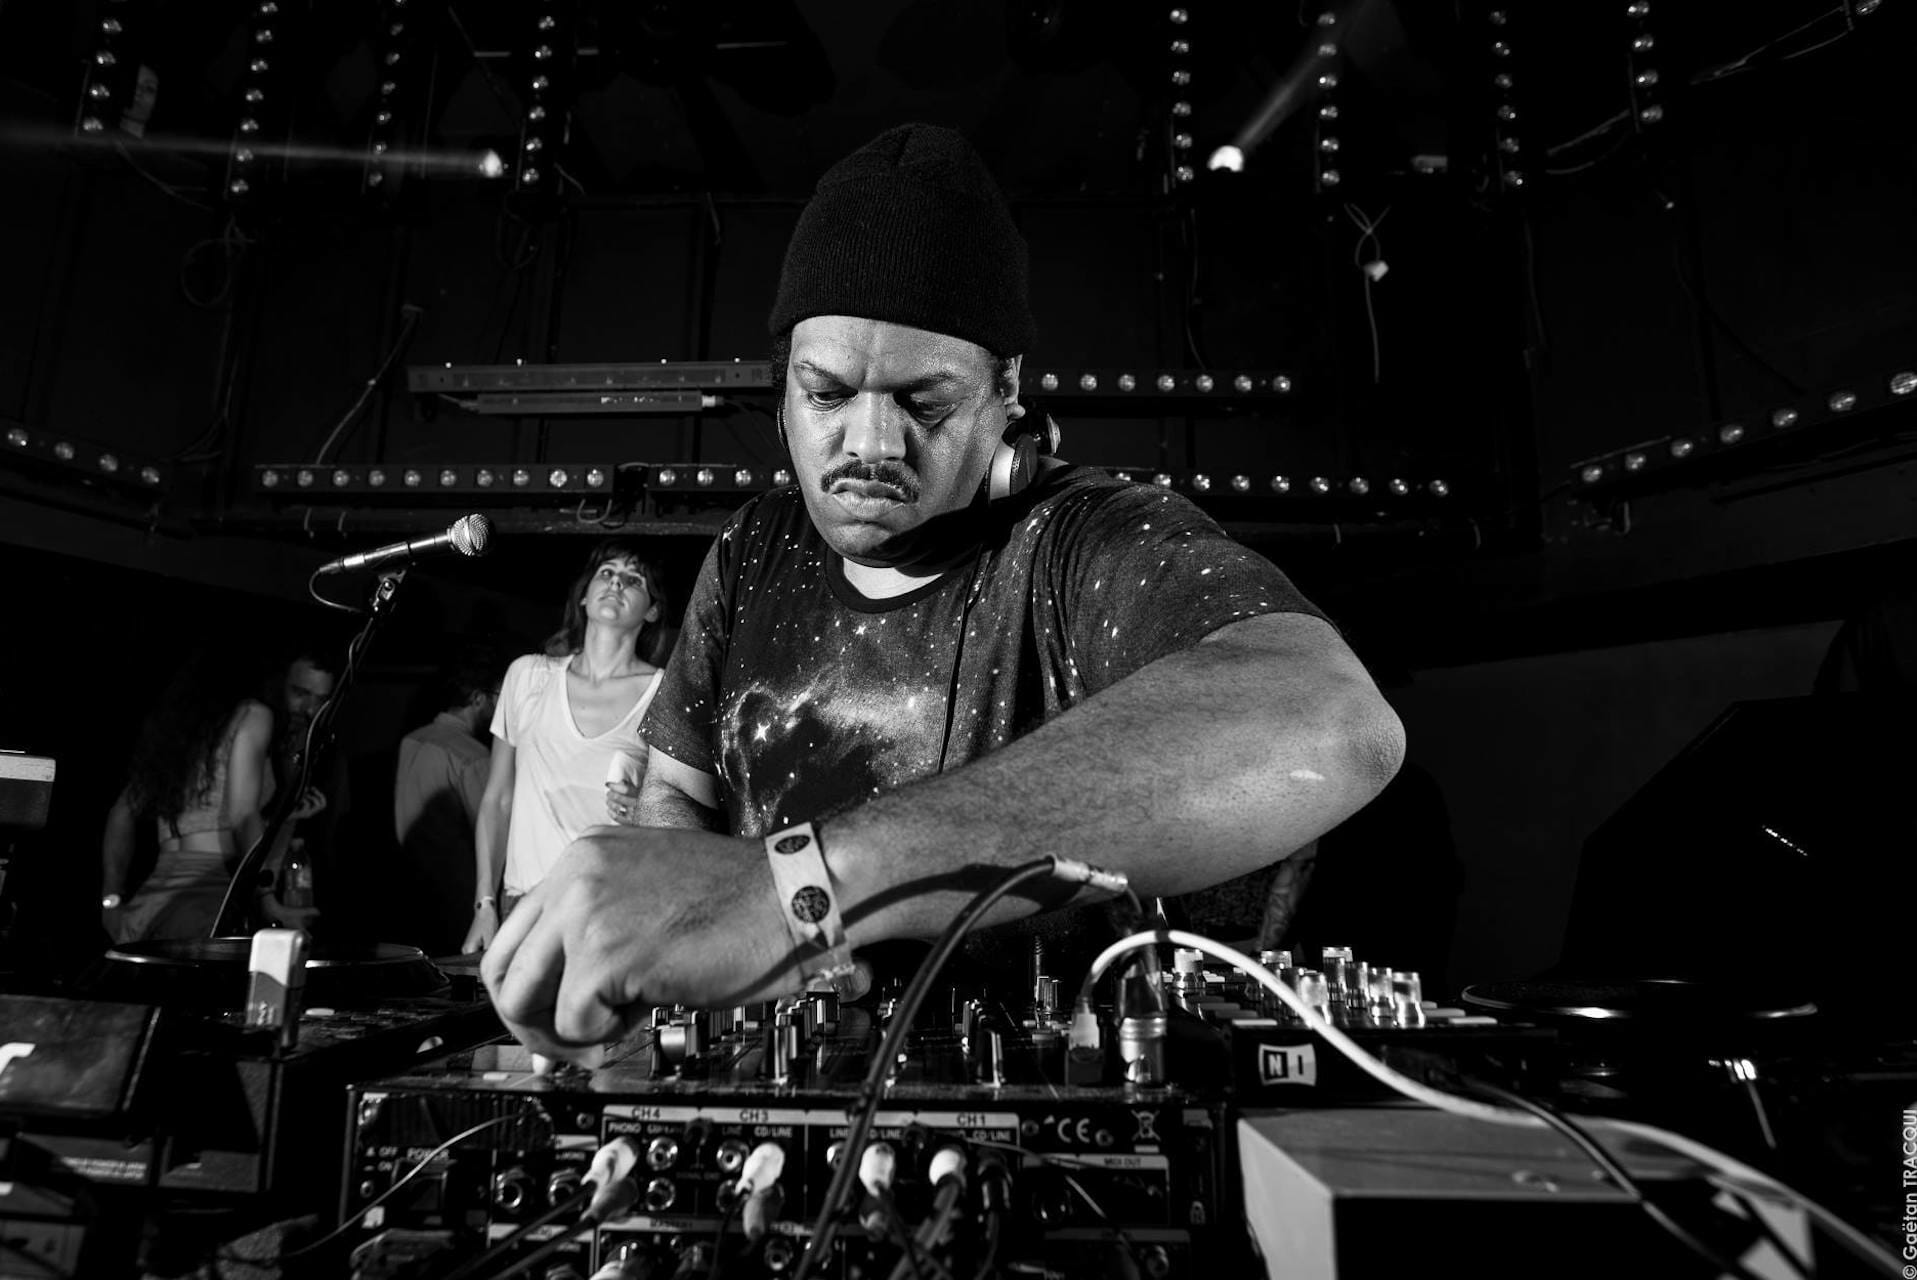 Kerri Chandler drops remix of Bonobo and Totally Enormous Extinct Dinosaurs' 'Heartbreak'Kerri Chandler Gaetan Tracqui